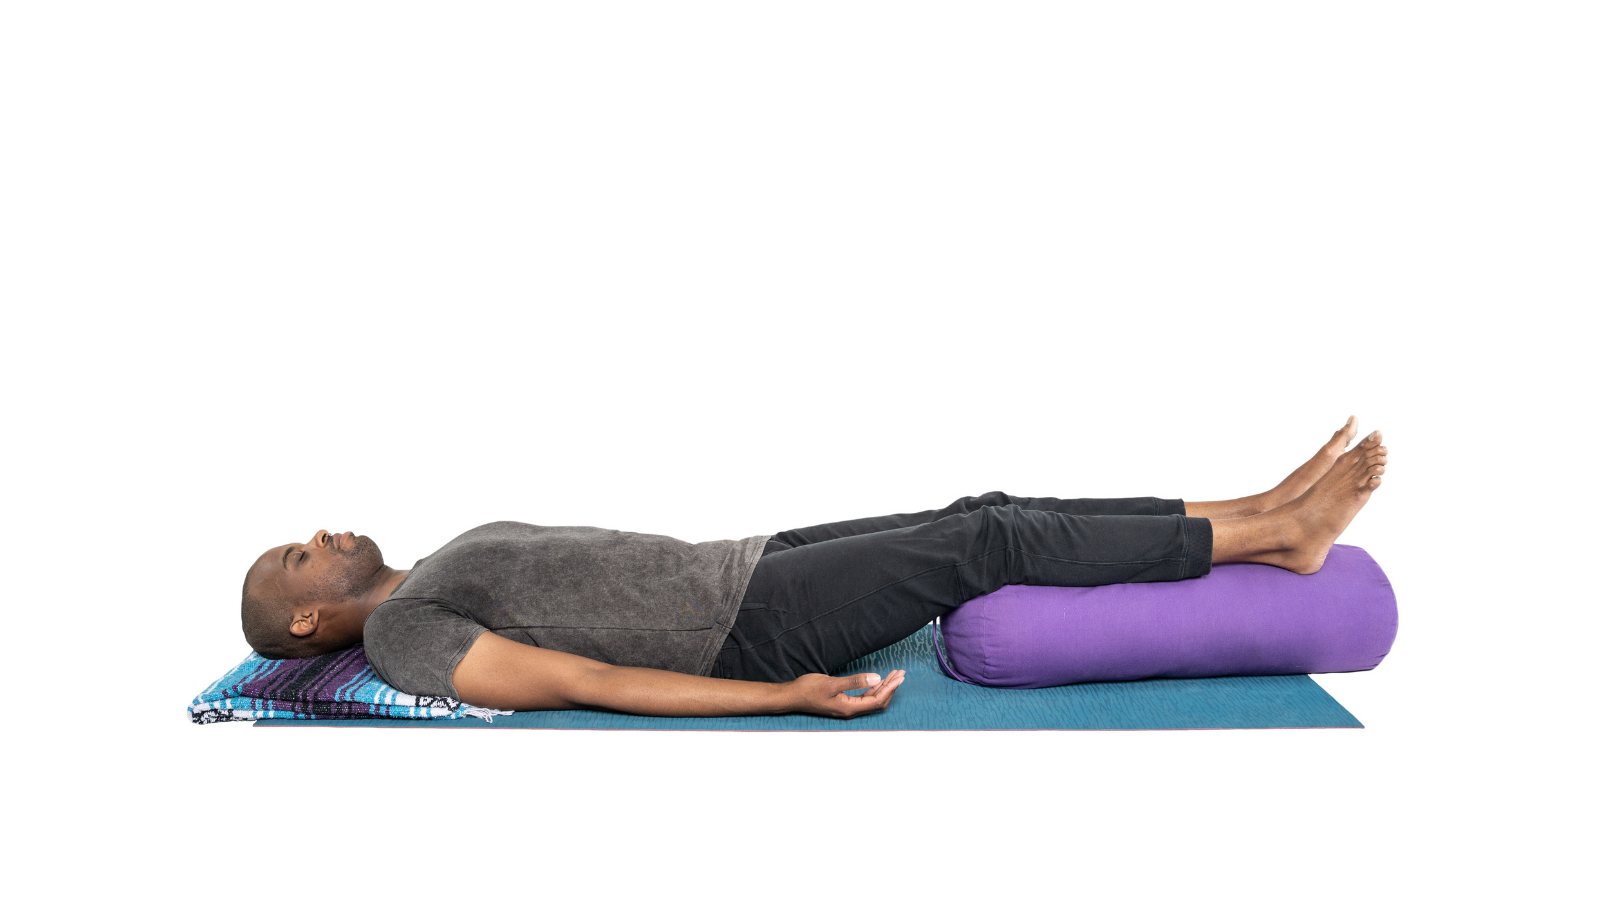 Yoga student practicing Simple Supported Savasana pose to put the body in the healing rest and digest state